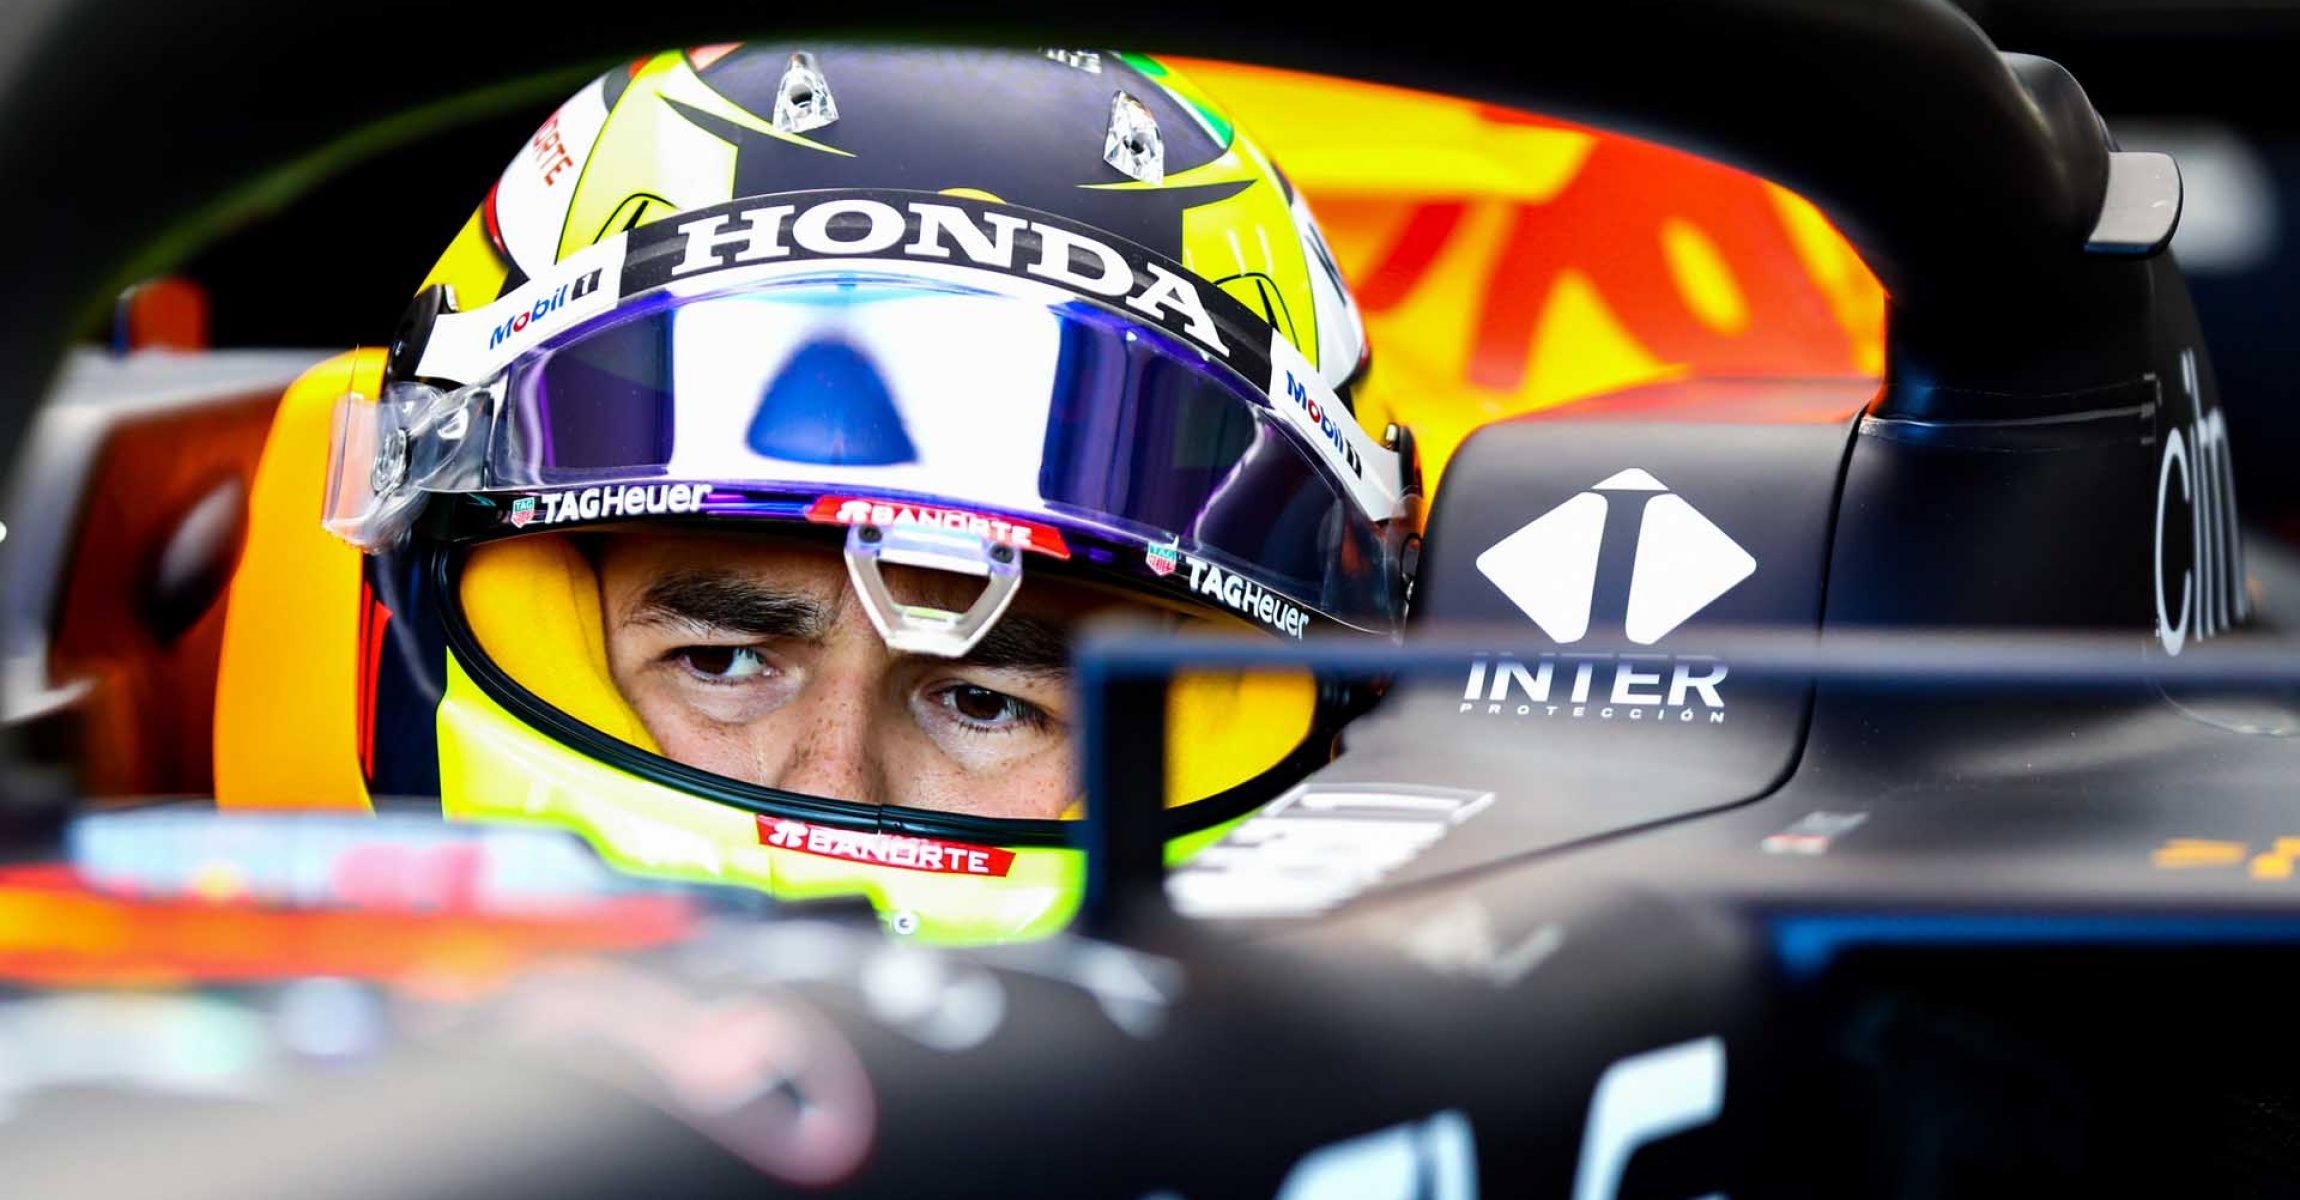 IMOLA, ITALY - APRIL 16: Sergio Perez of Mexico and Red Bull Racing prepares to drive in the garage during practice ahead of the F1 Grand Prix of Emilia Romagna at Autodromo Enzo e Dino Ferrari on April 16, 2021 in Imola, Italy. (Photo by Mark Thompson/Getty Images)